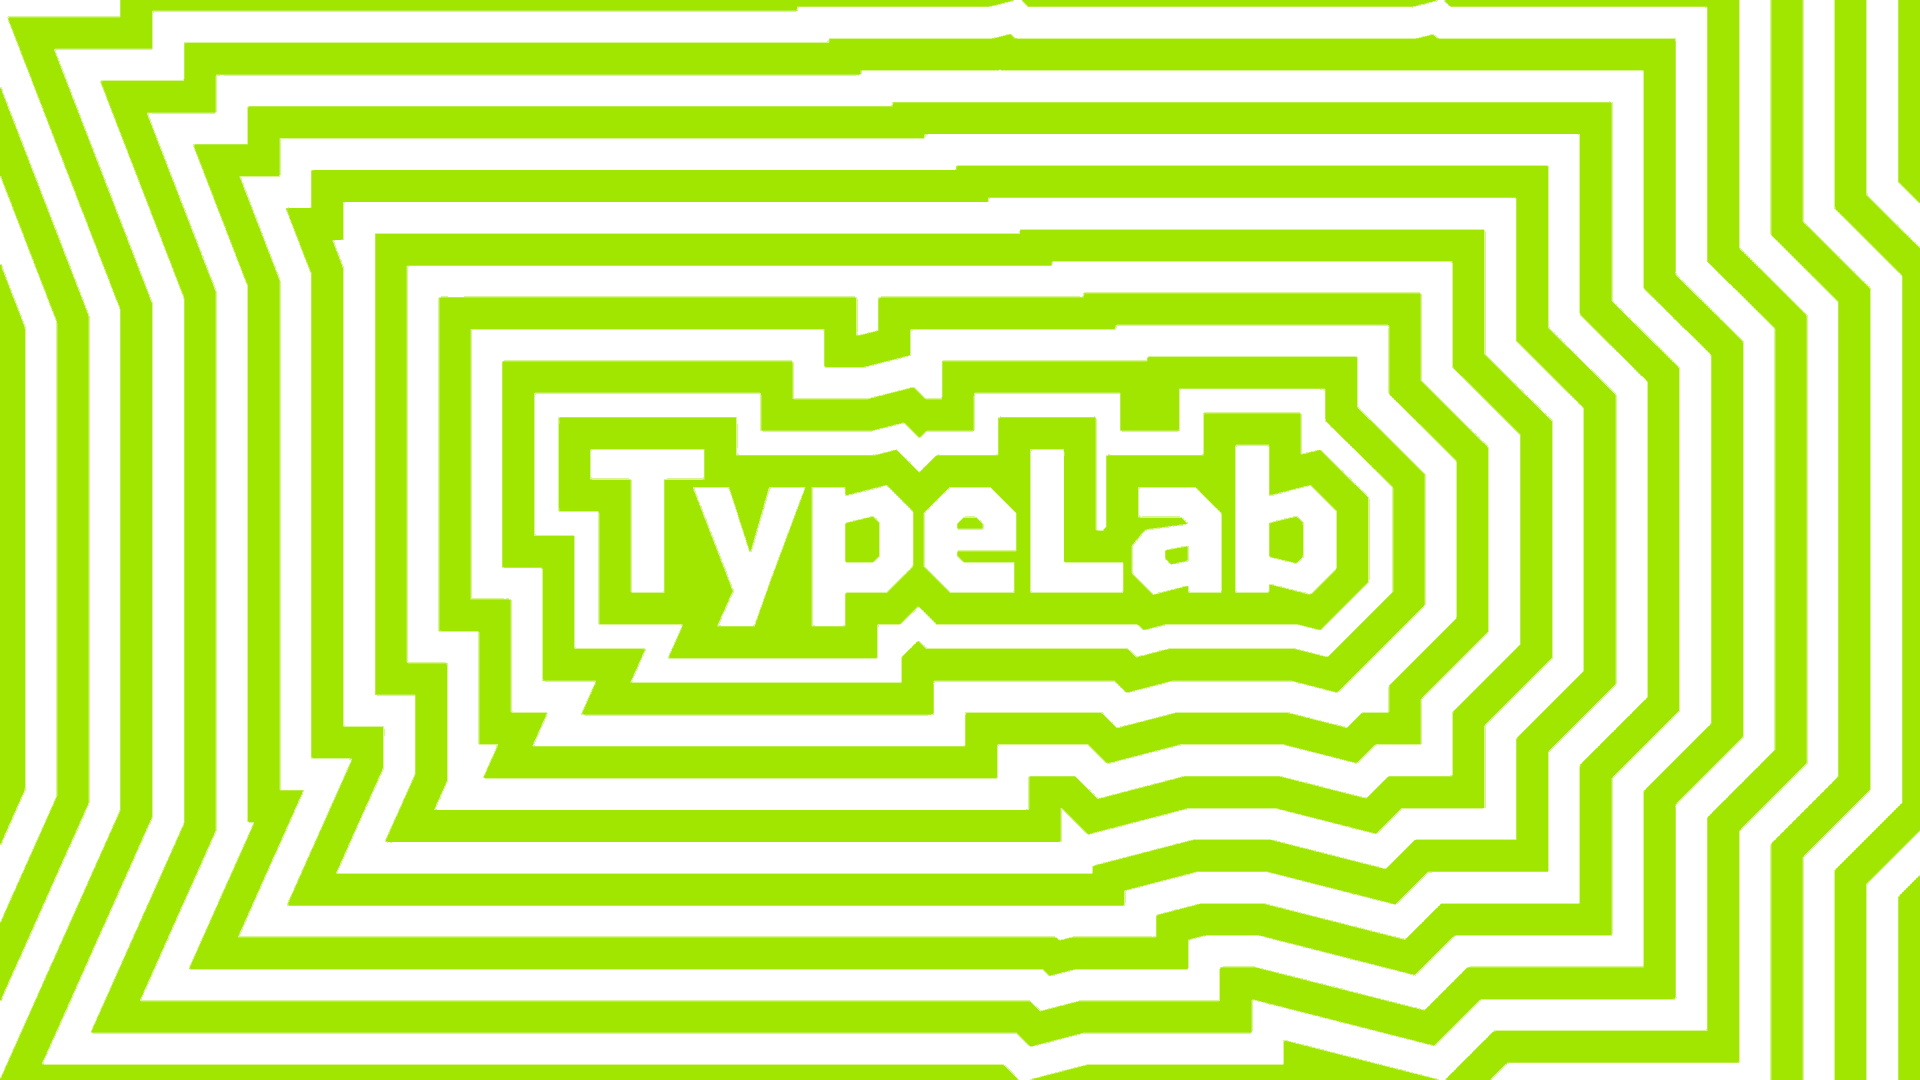 TypeLab at Typographics